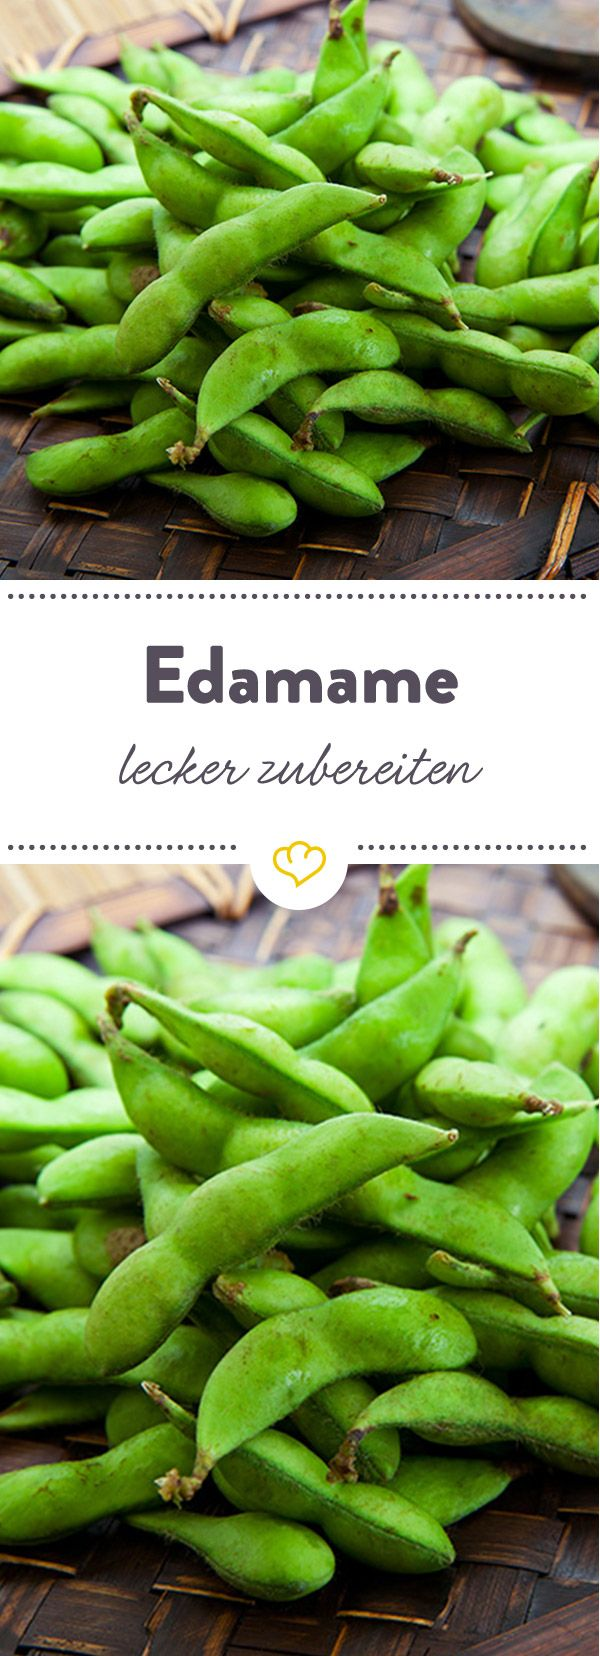 edamame snack recipes - photo #30